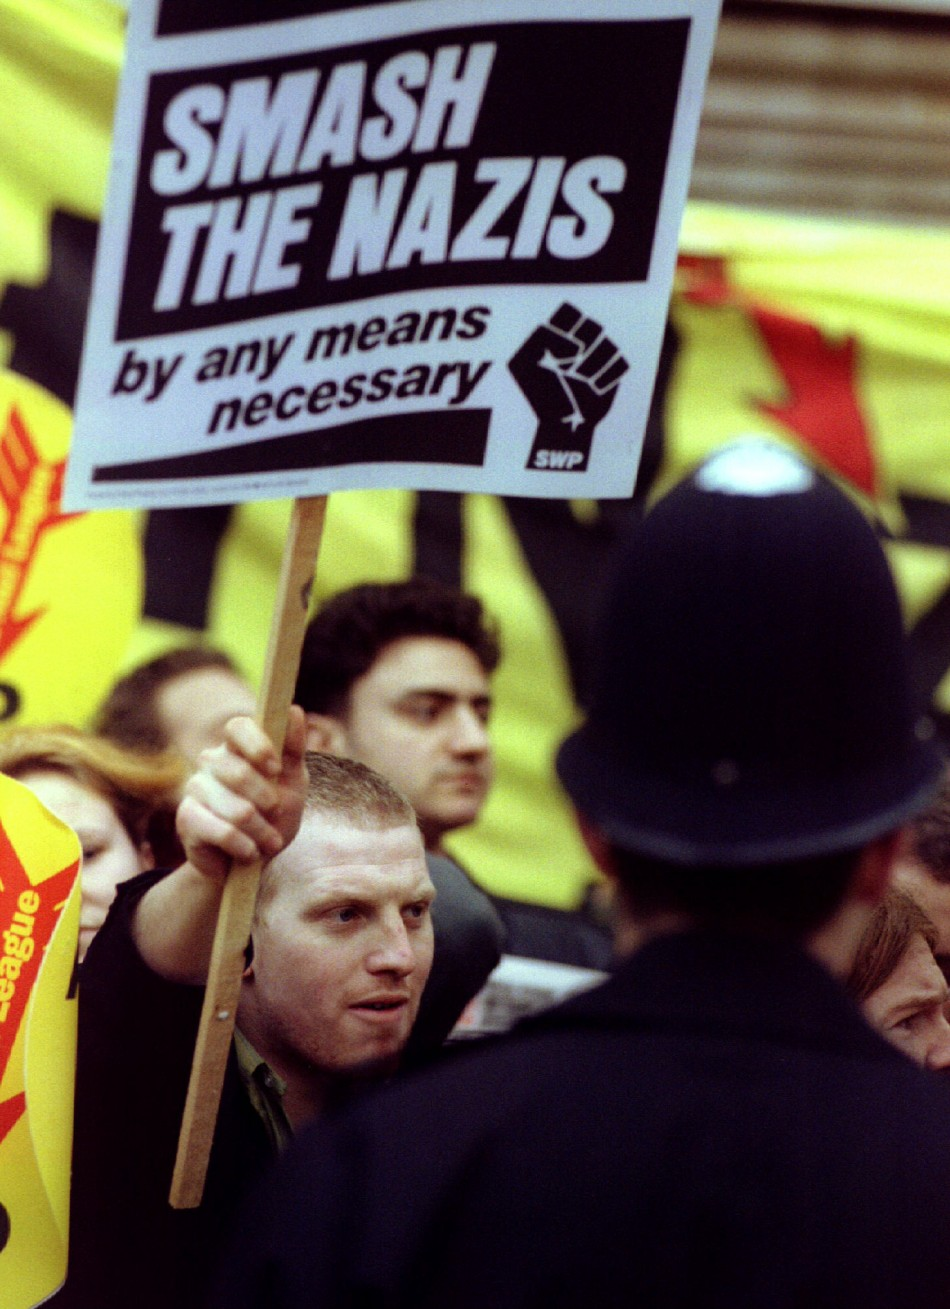 The international day of action against fascism will see the most coordinated protests in dozens of cities worldwide against fascism for decades